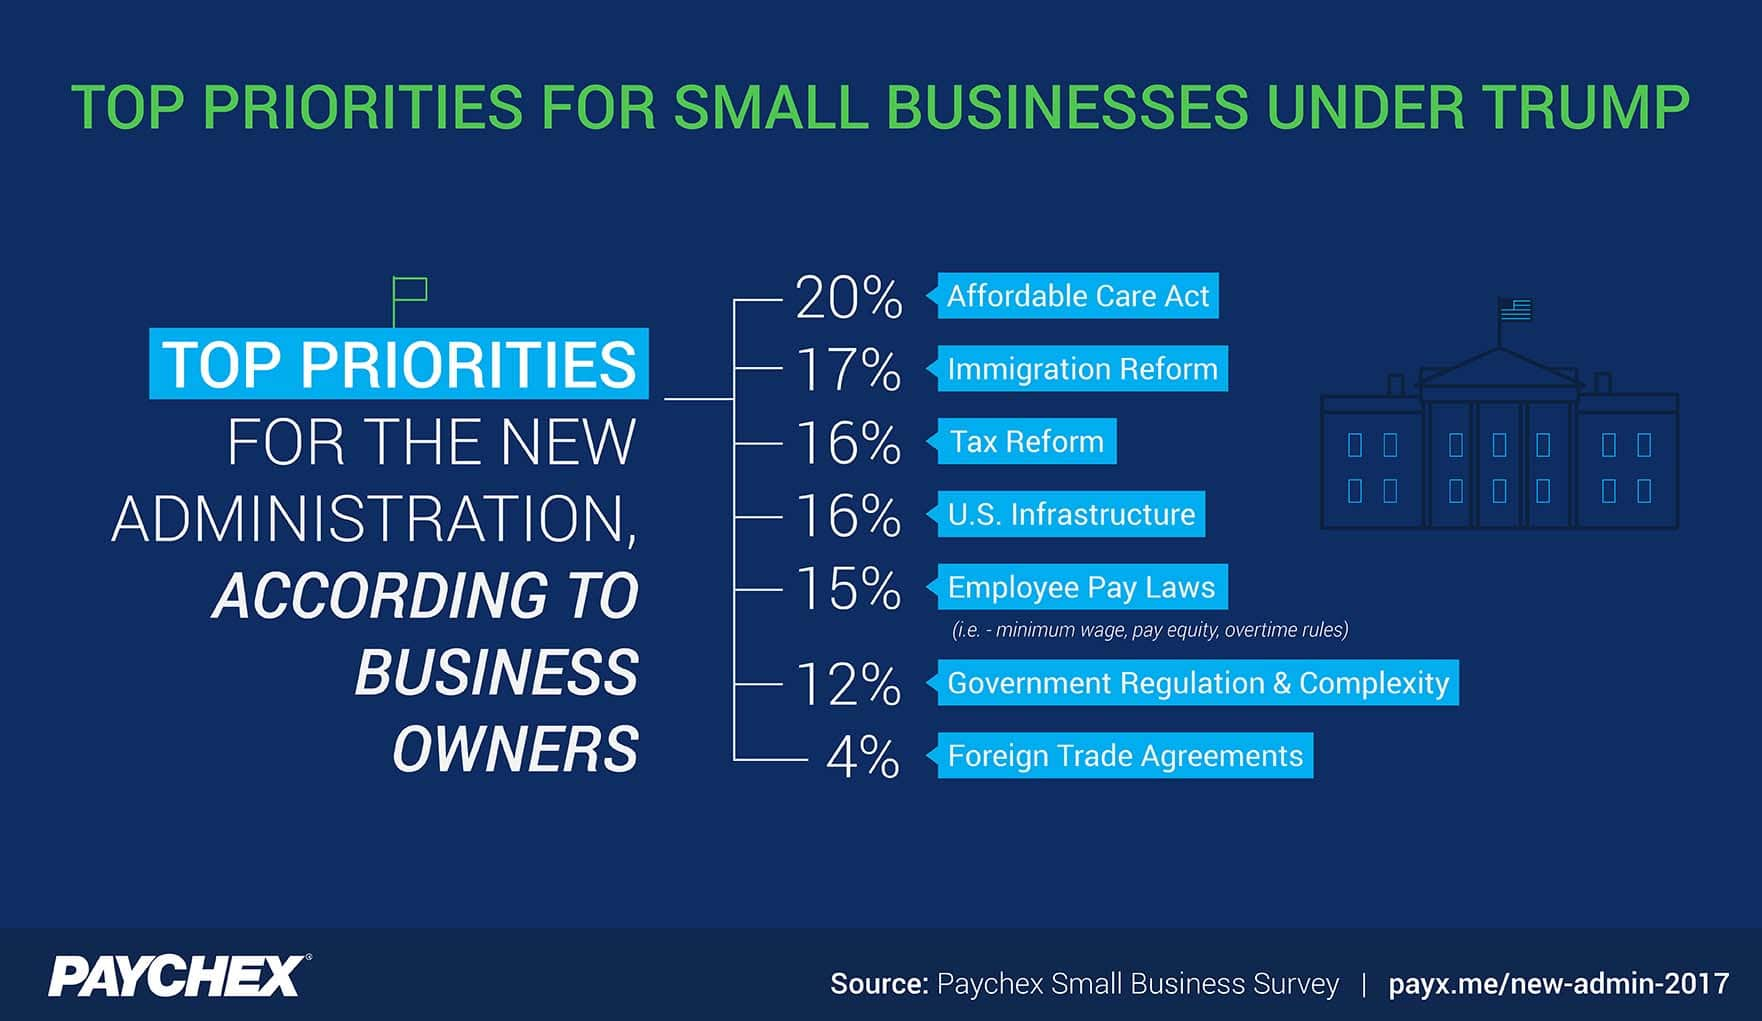 An image showing the top priorities for the new administration, according to small business owners. Affordable Care Act, Immigration Reform, and Tax Reform round out the top responses.